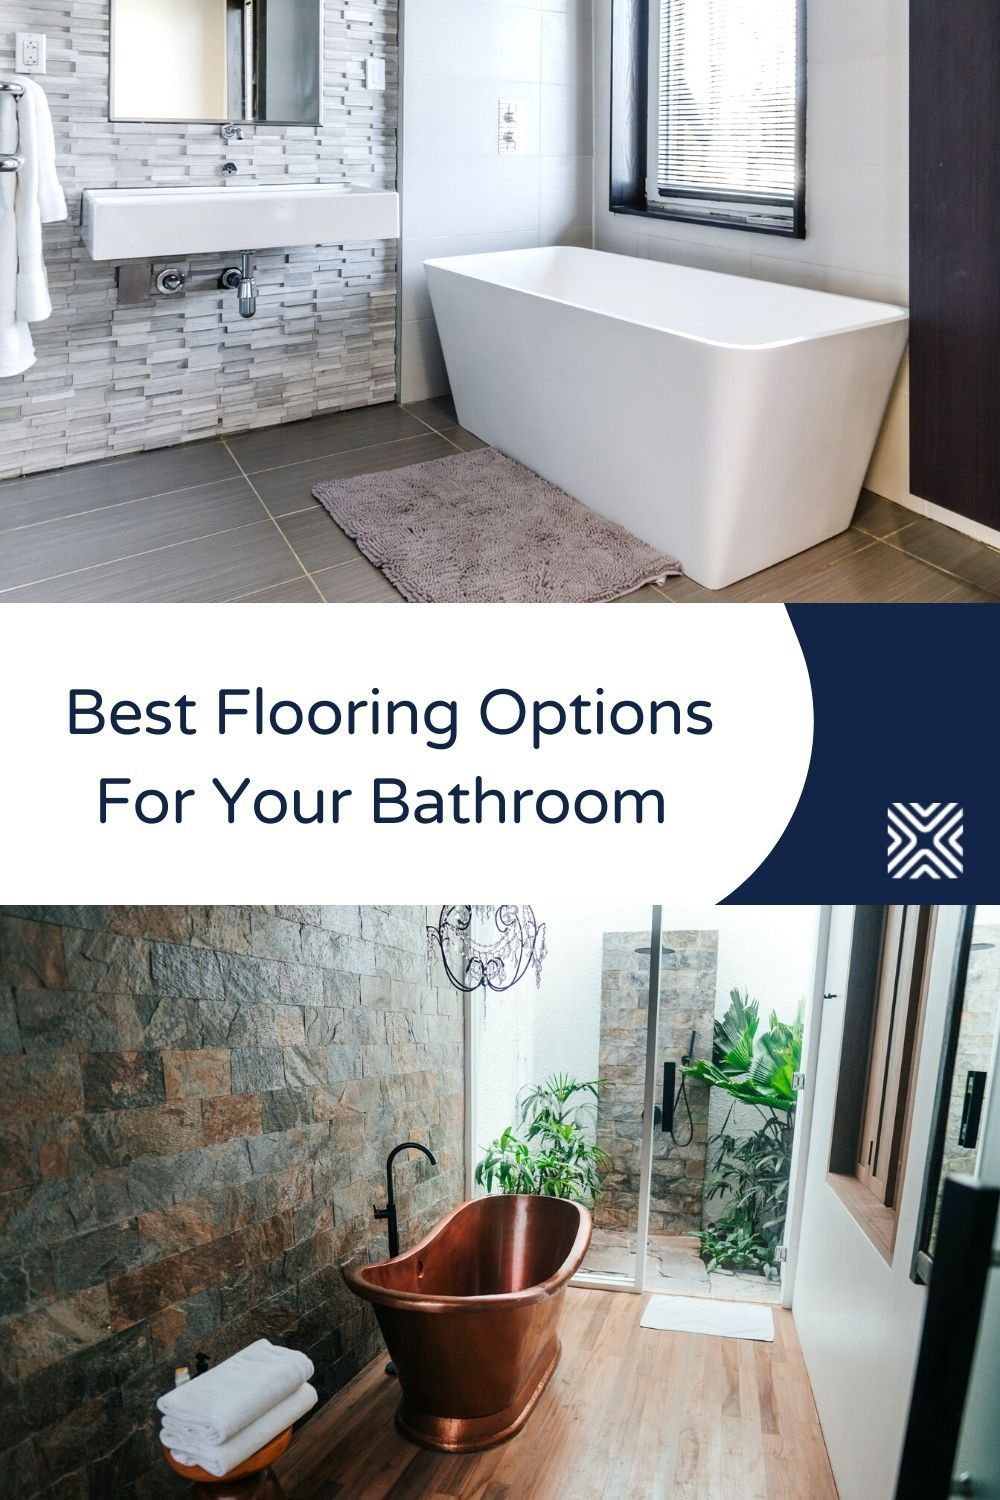 Know The 9 Best Bathroom Flooring Options For Your Home Bathroom Flooring Options Best Bathroom Flooring Bathroom Renovation Cost